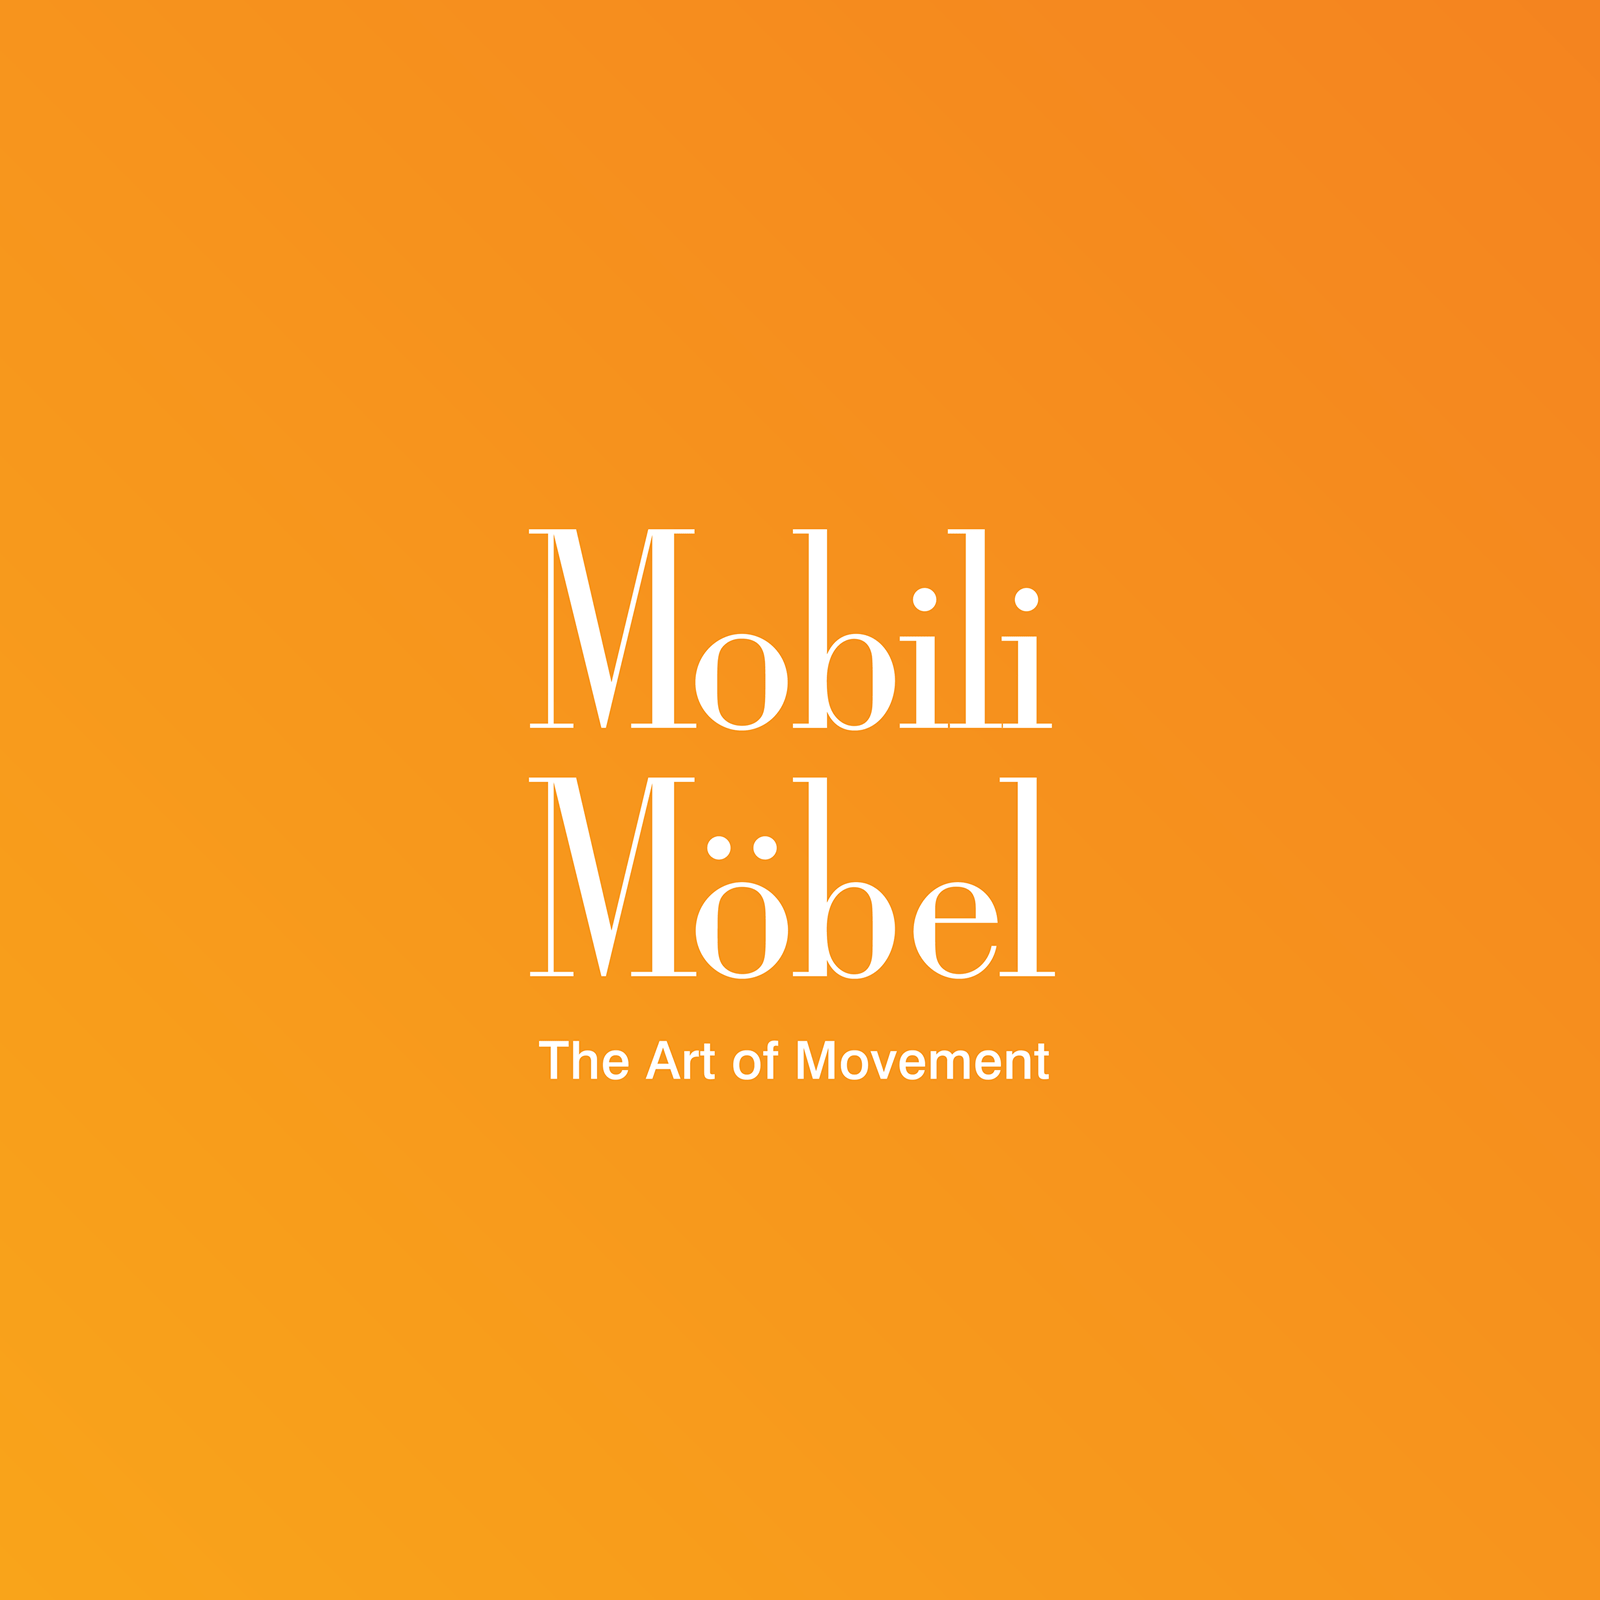 Mobel Modern Furniture Store Chicago Mobili Mobel